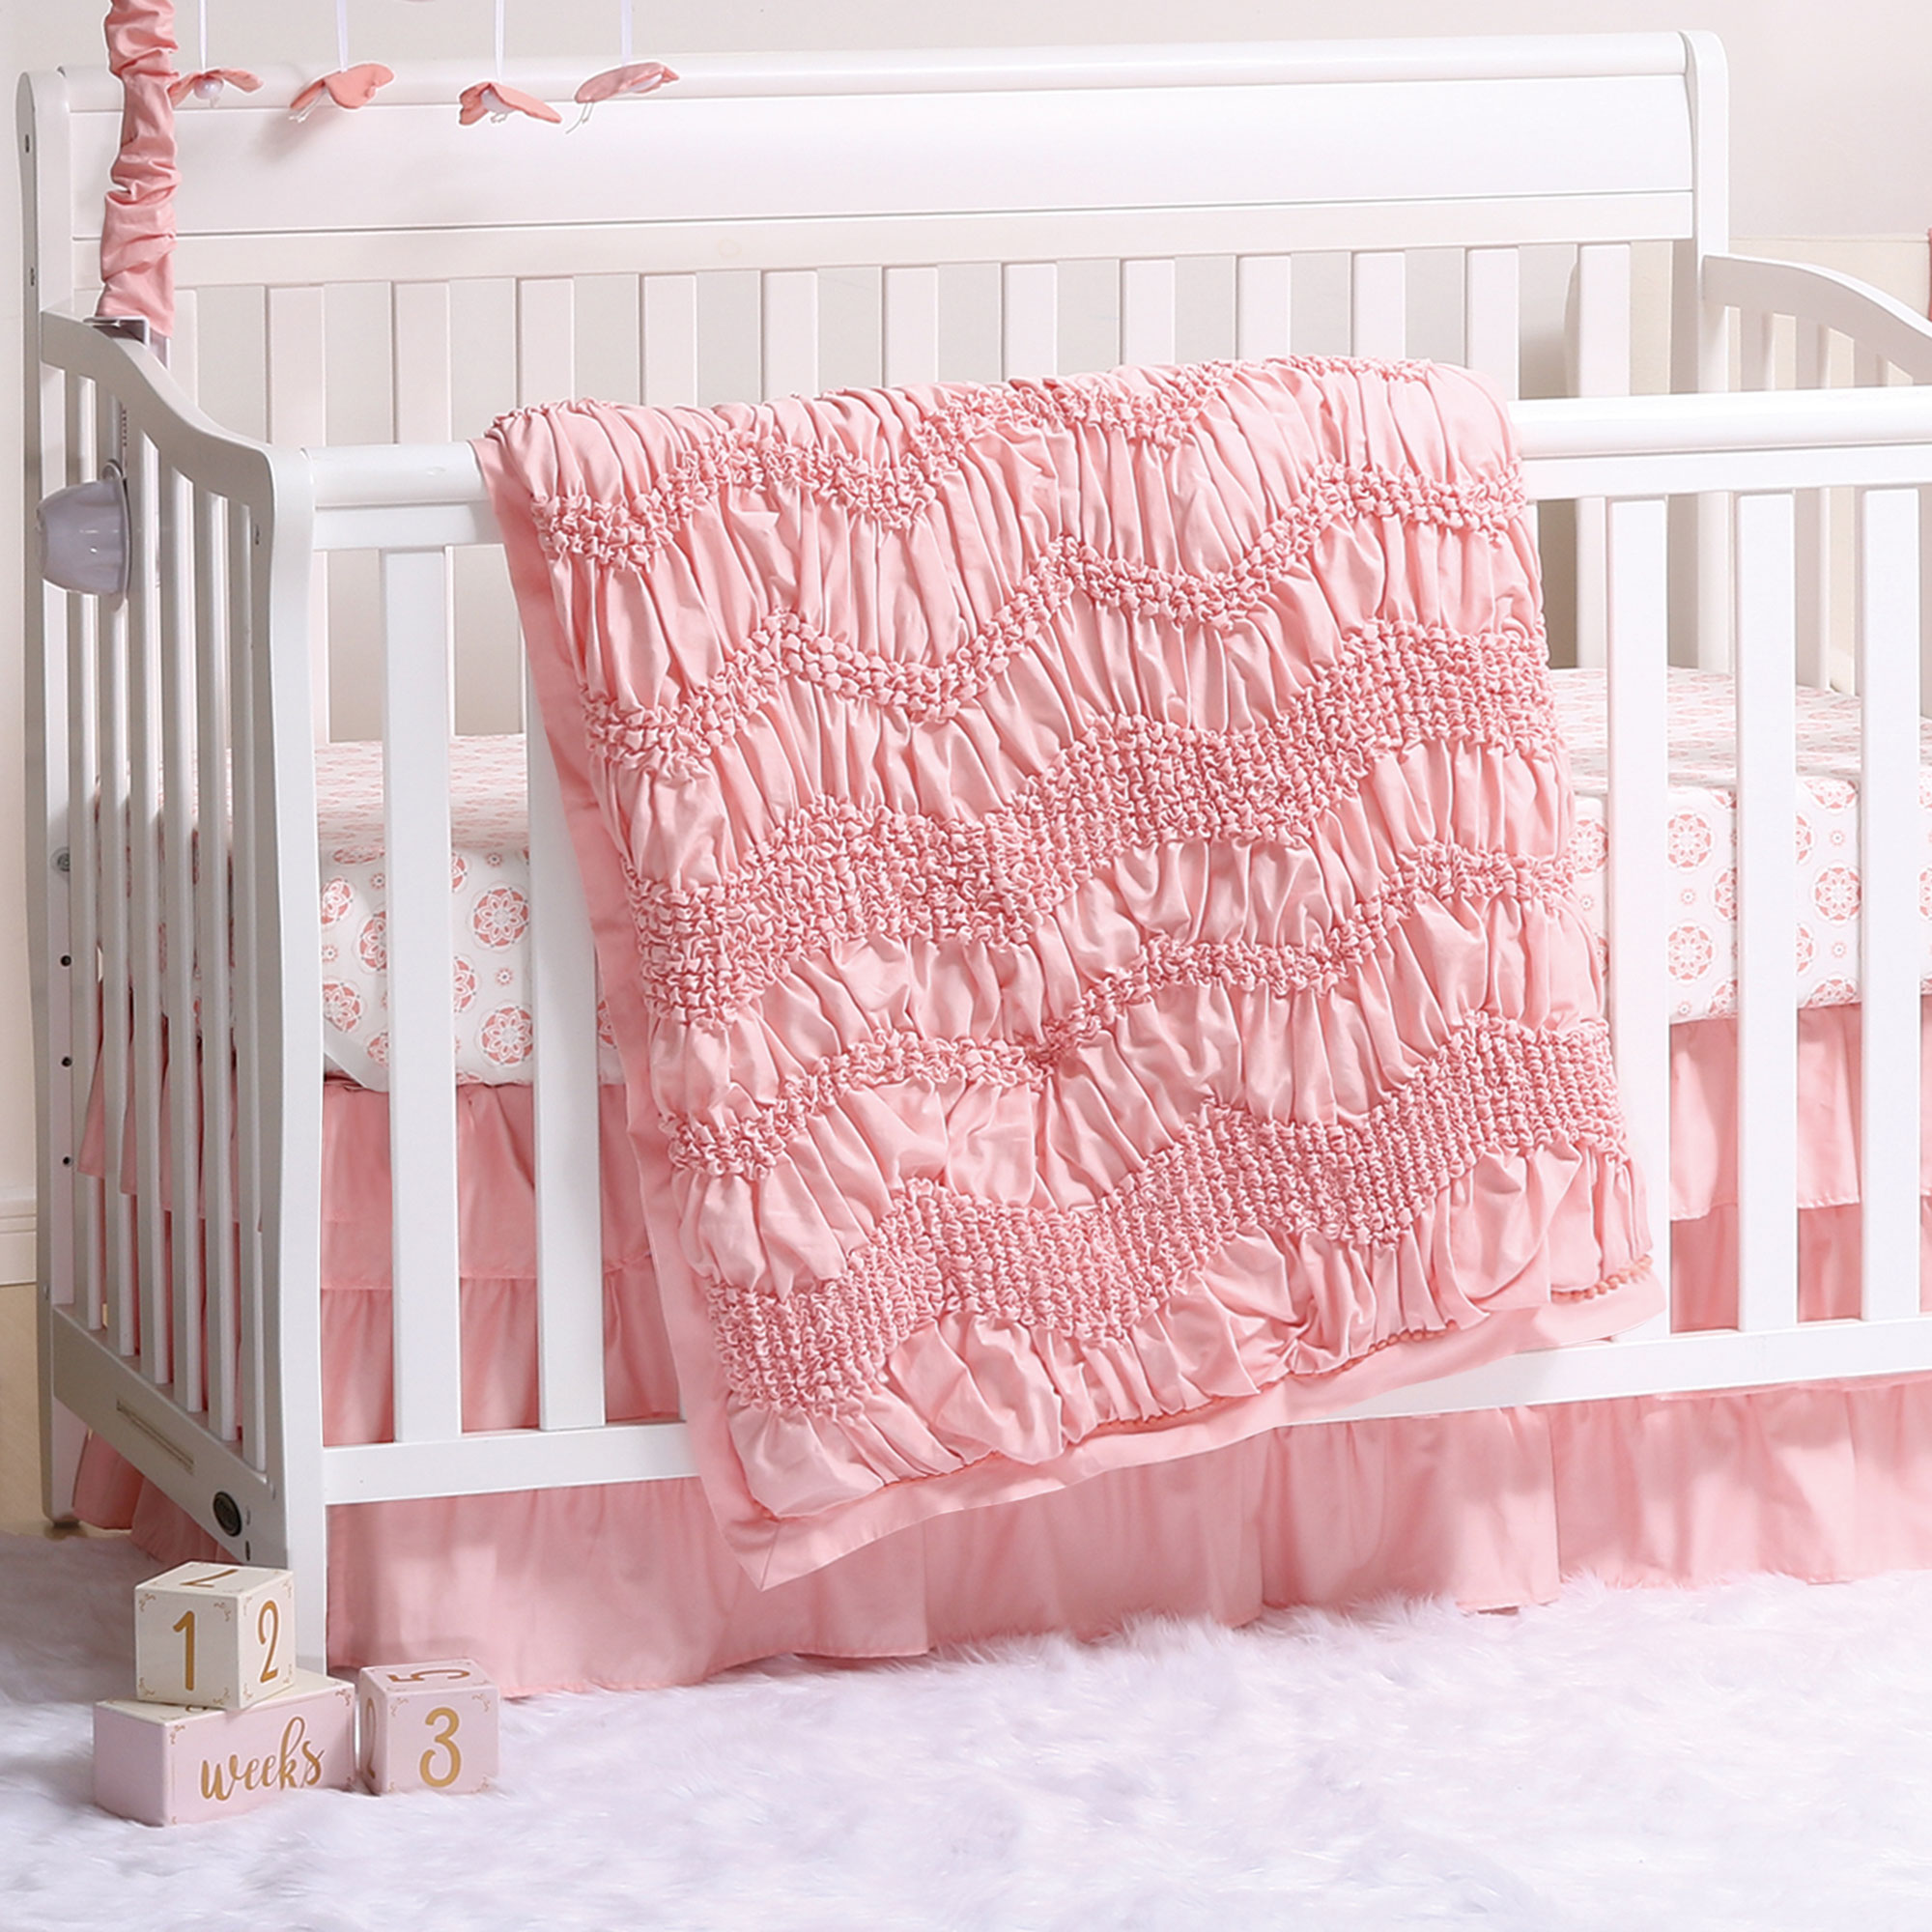 Jayden Coral Smocked 3 Piece Baby Crib Bedding Set by The Peanut Shell